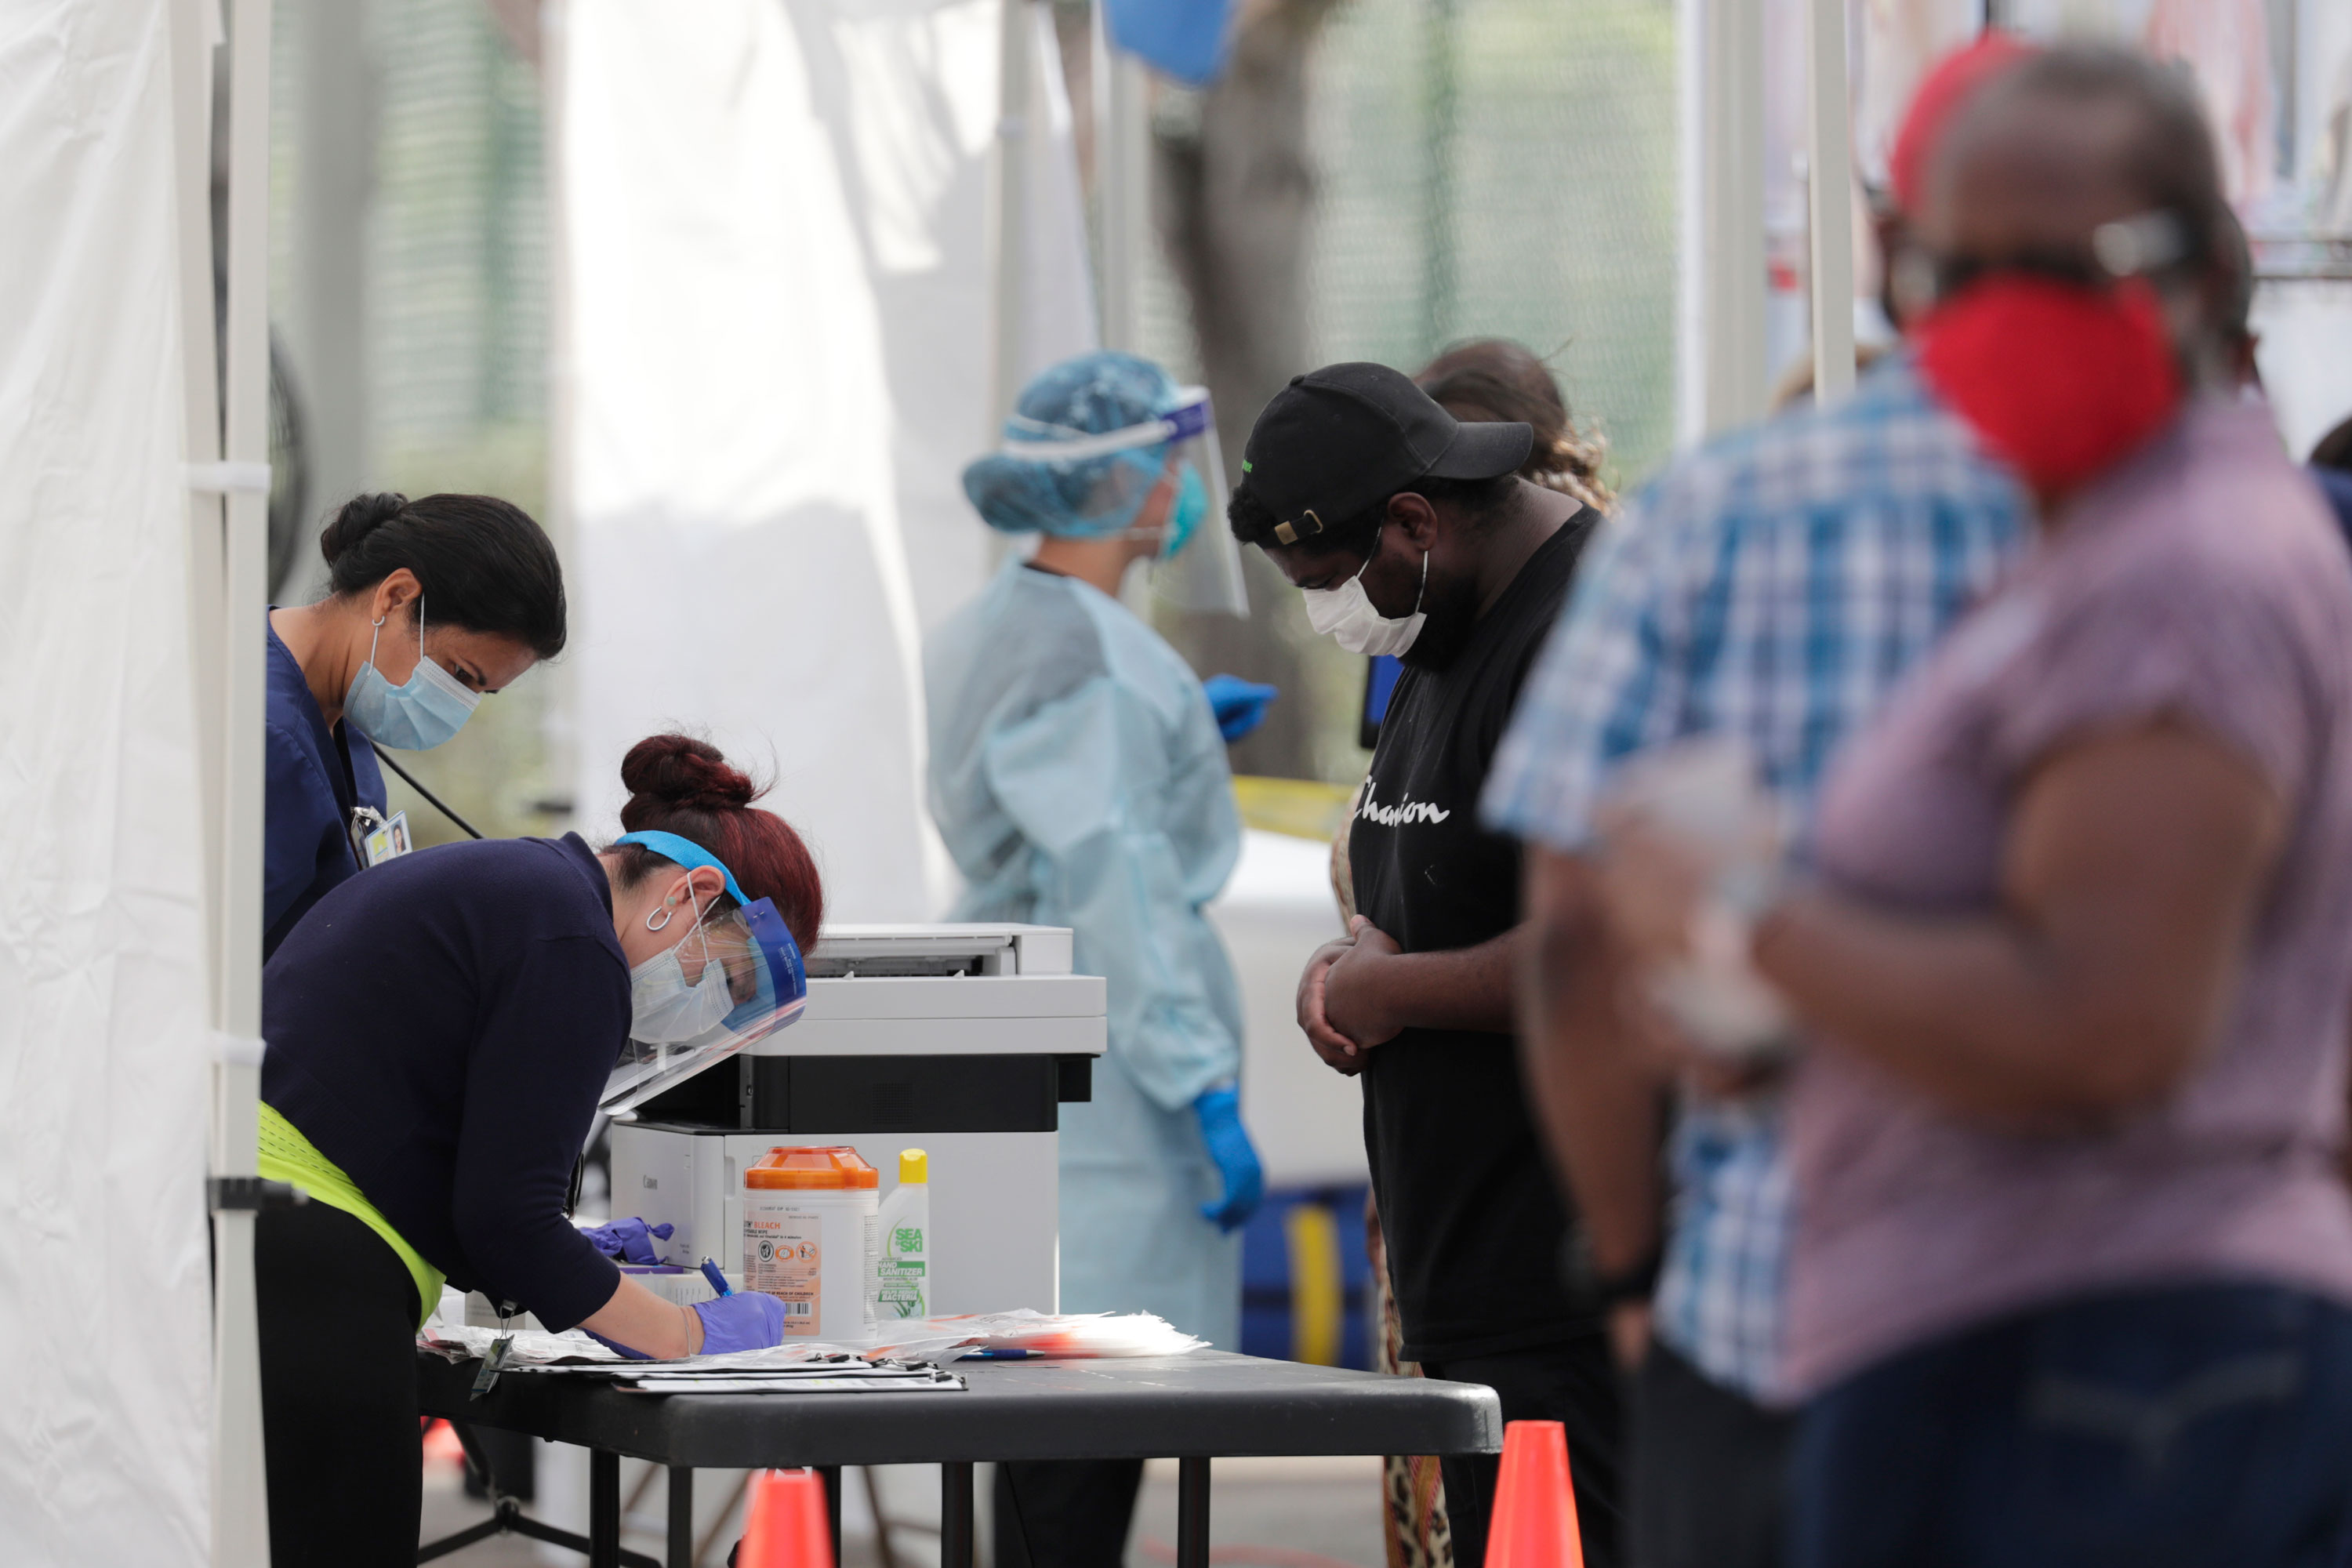 Coronavirus tests are administered at the West Perrine Health Center on May 28 in Miami.